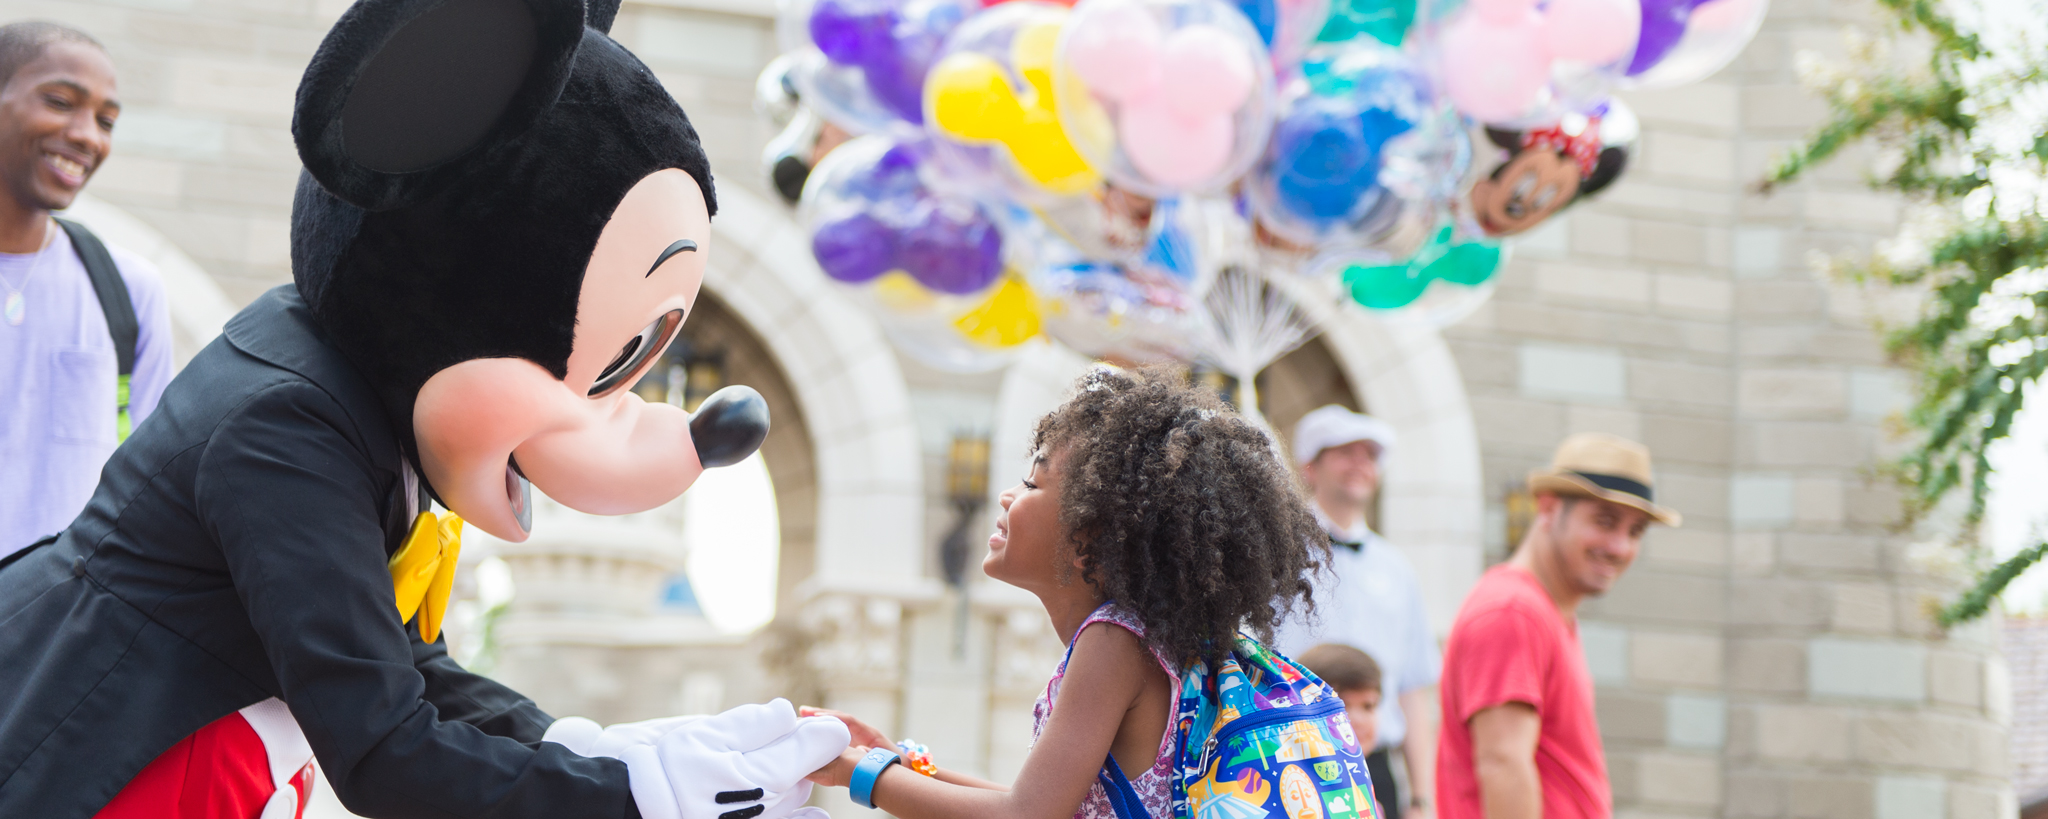 Mickey Mouse greets a smiling young girl in front of Magic Kingdom park